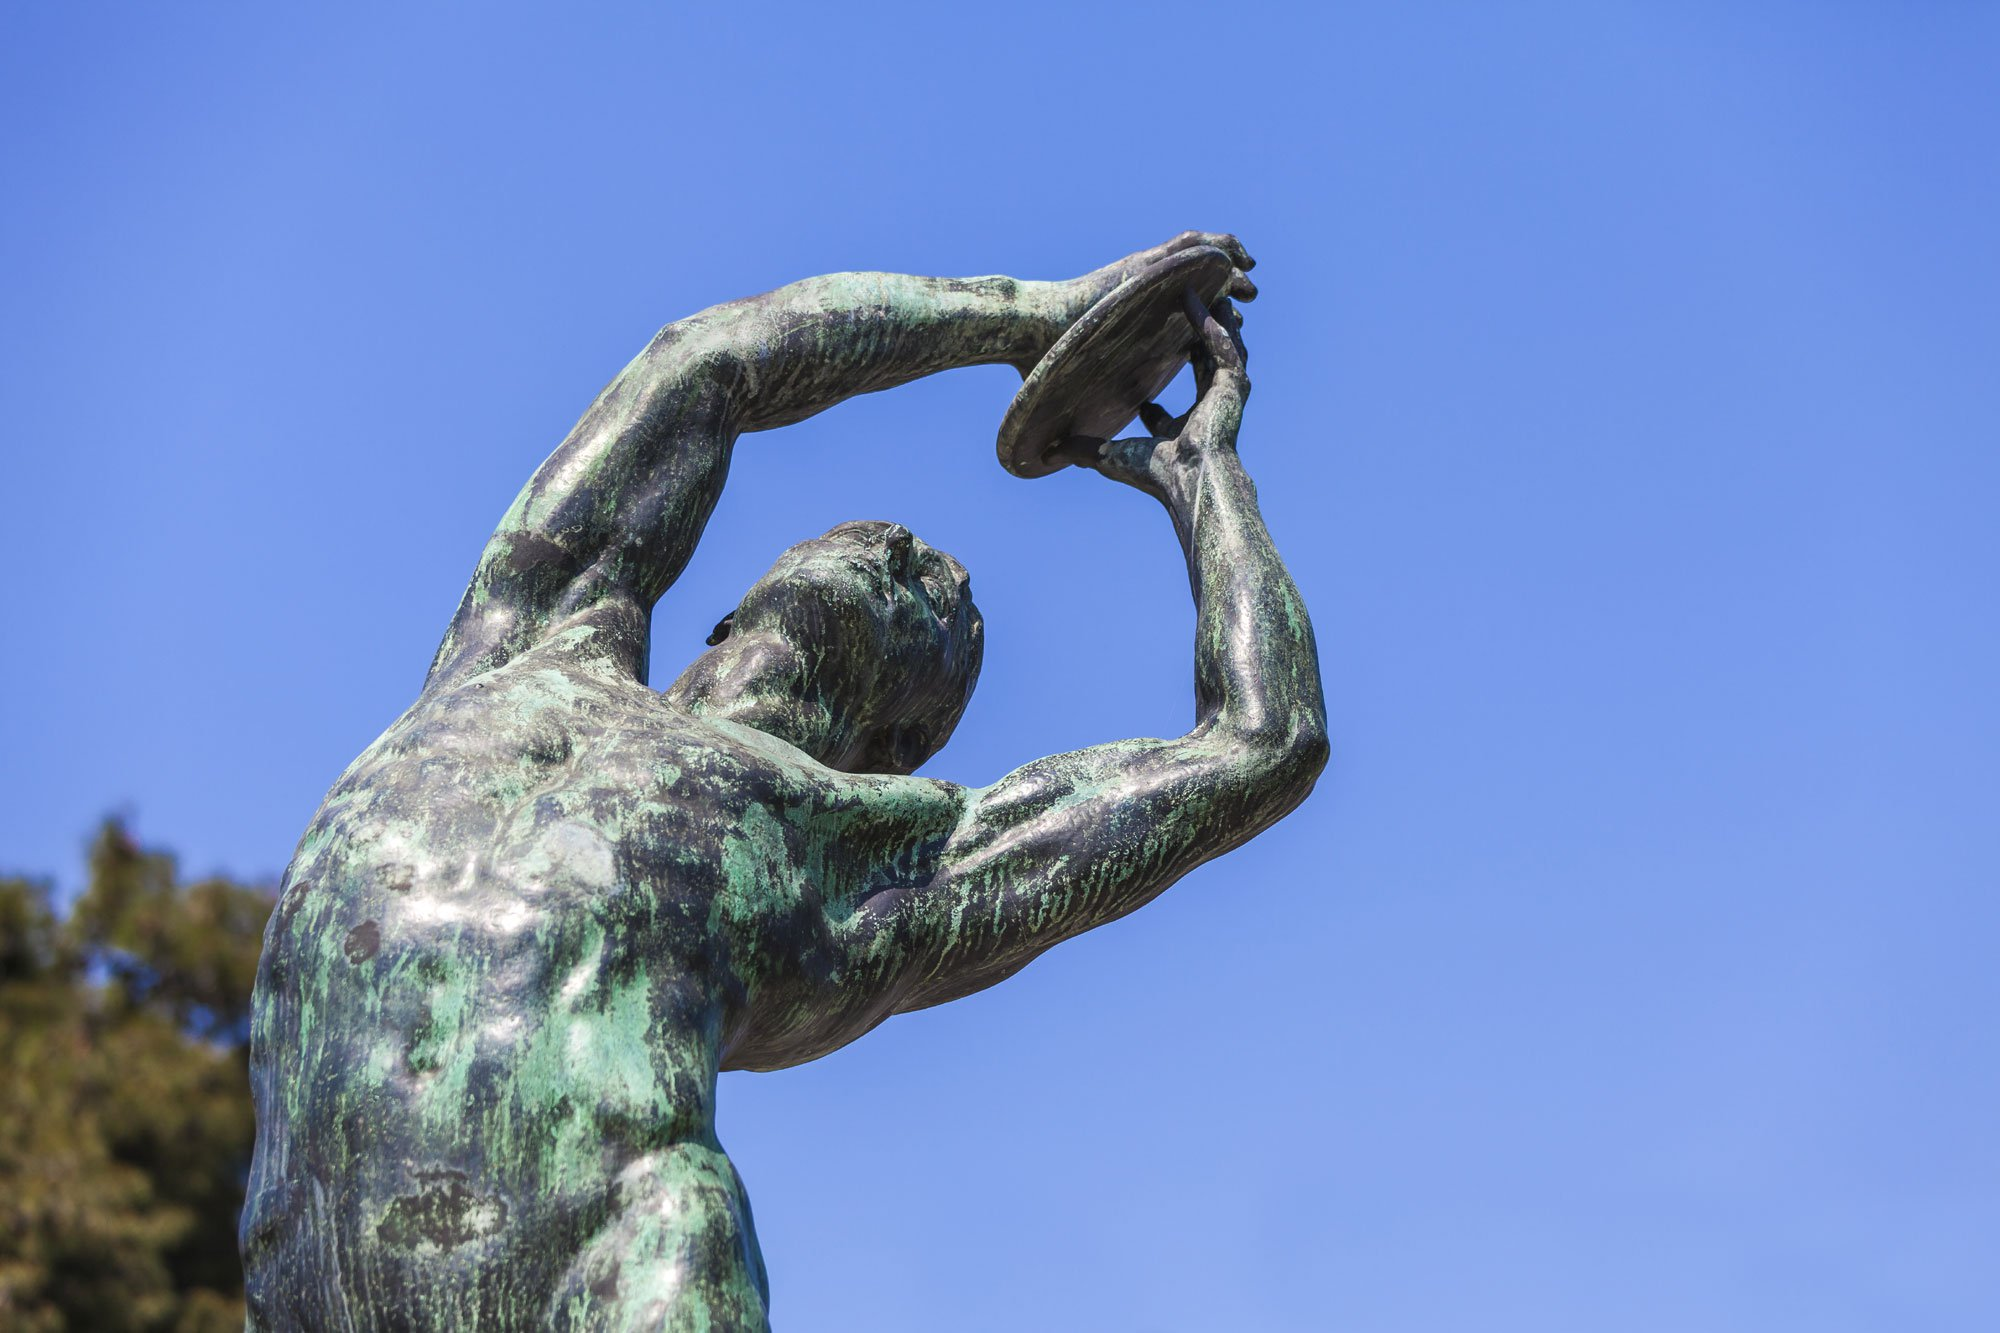 Bronze discobolus from the Panathenaic Stadium in Athens, host of the first modern Olympic Games in 1896.